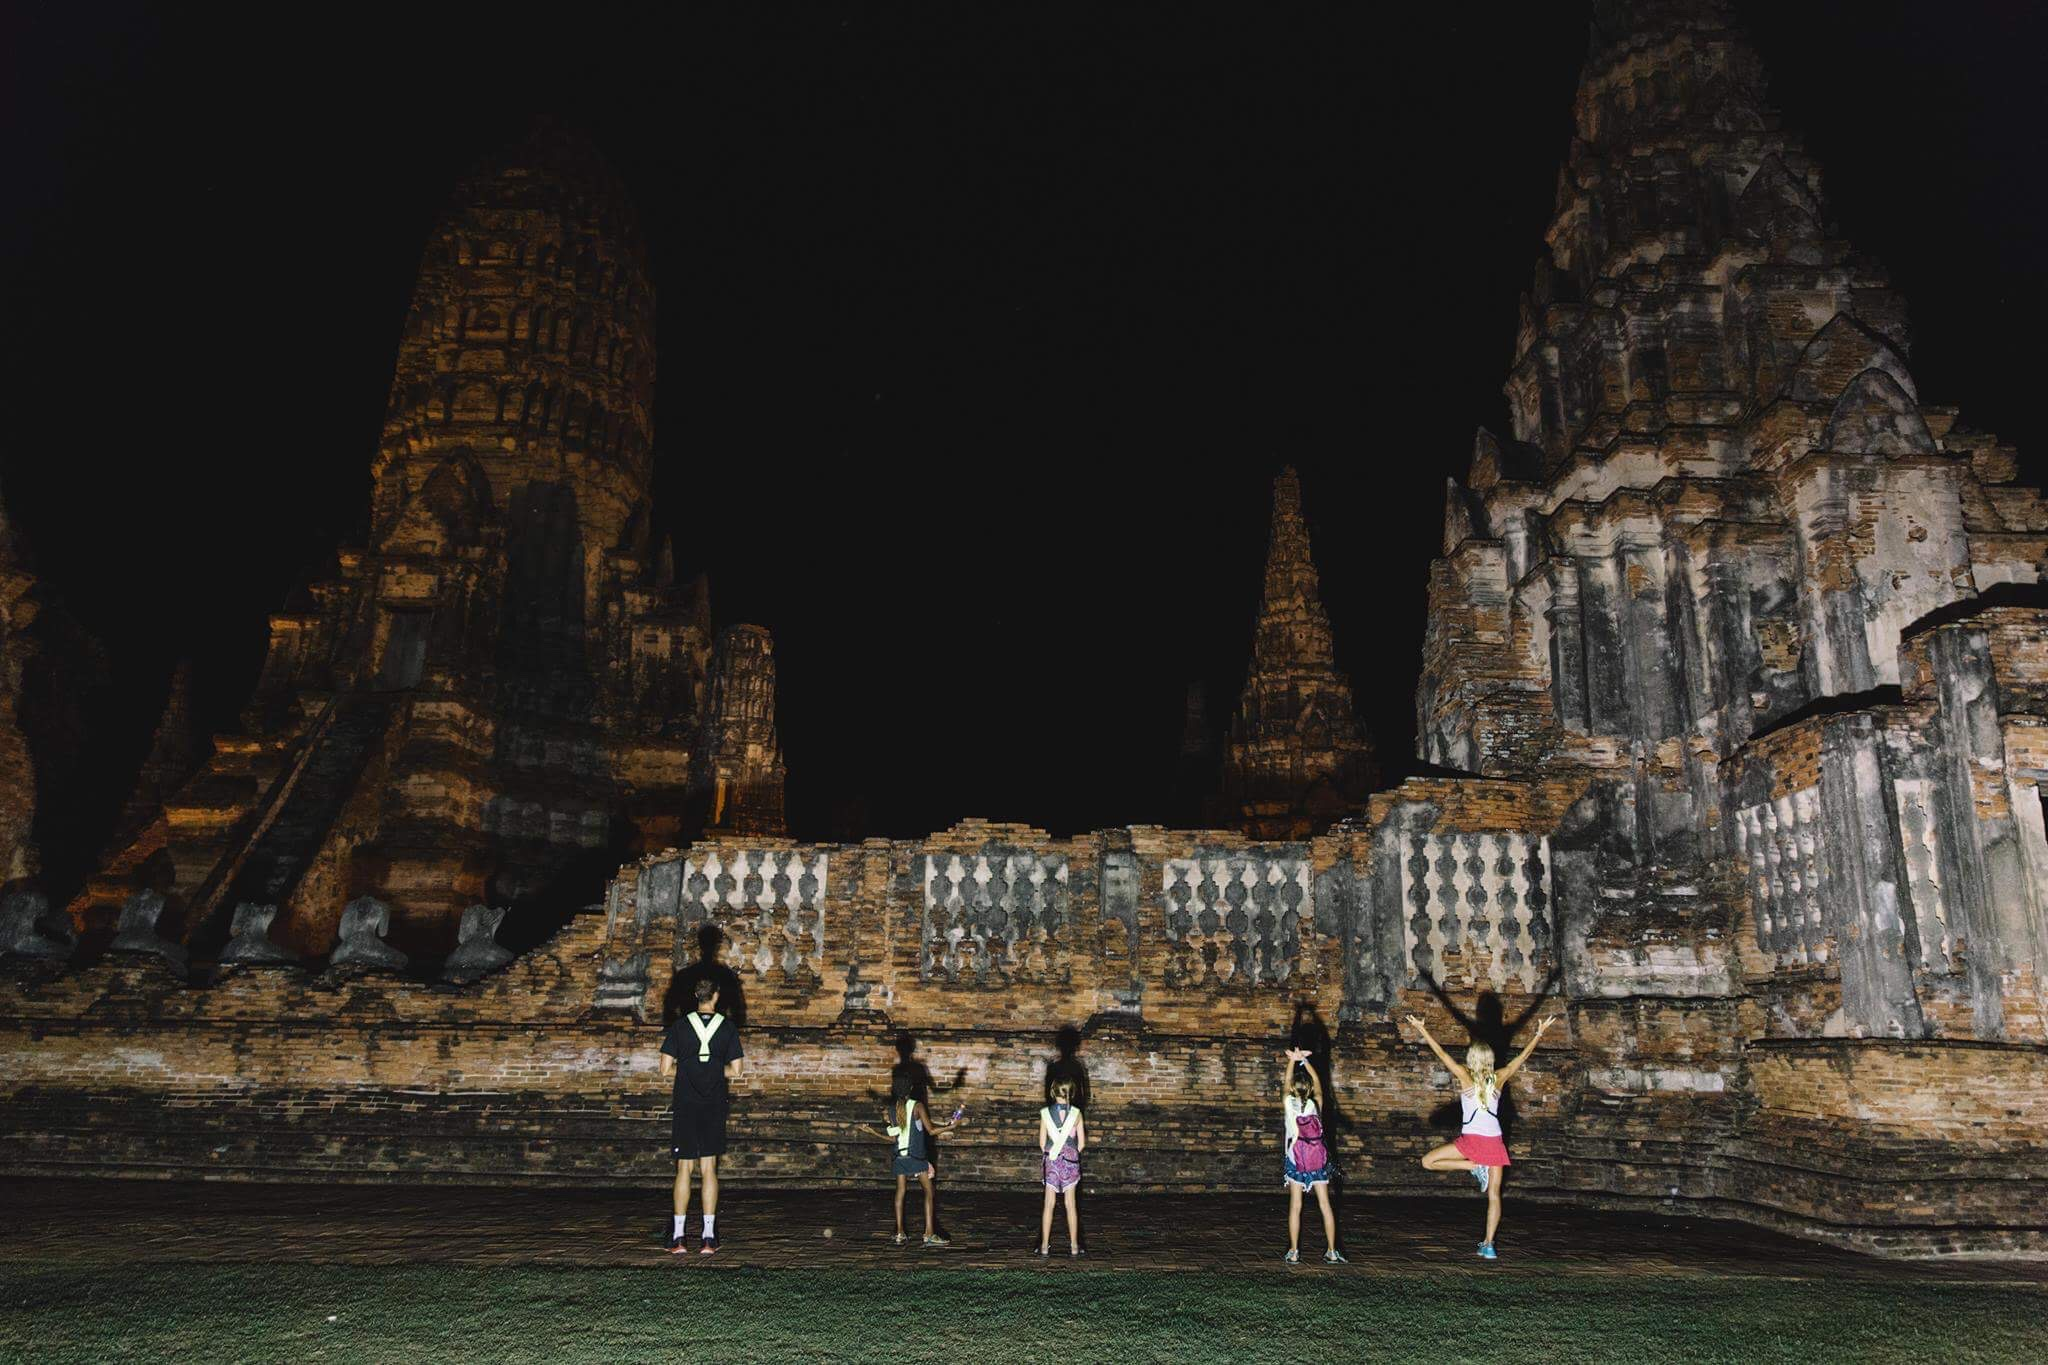 Exploring the ancient temples of the former capital of Thailand in Ayutthaya. This night time bicycle ride led us to some of the most impressive and oldest temples in the country.